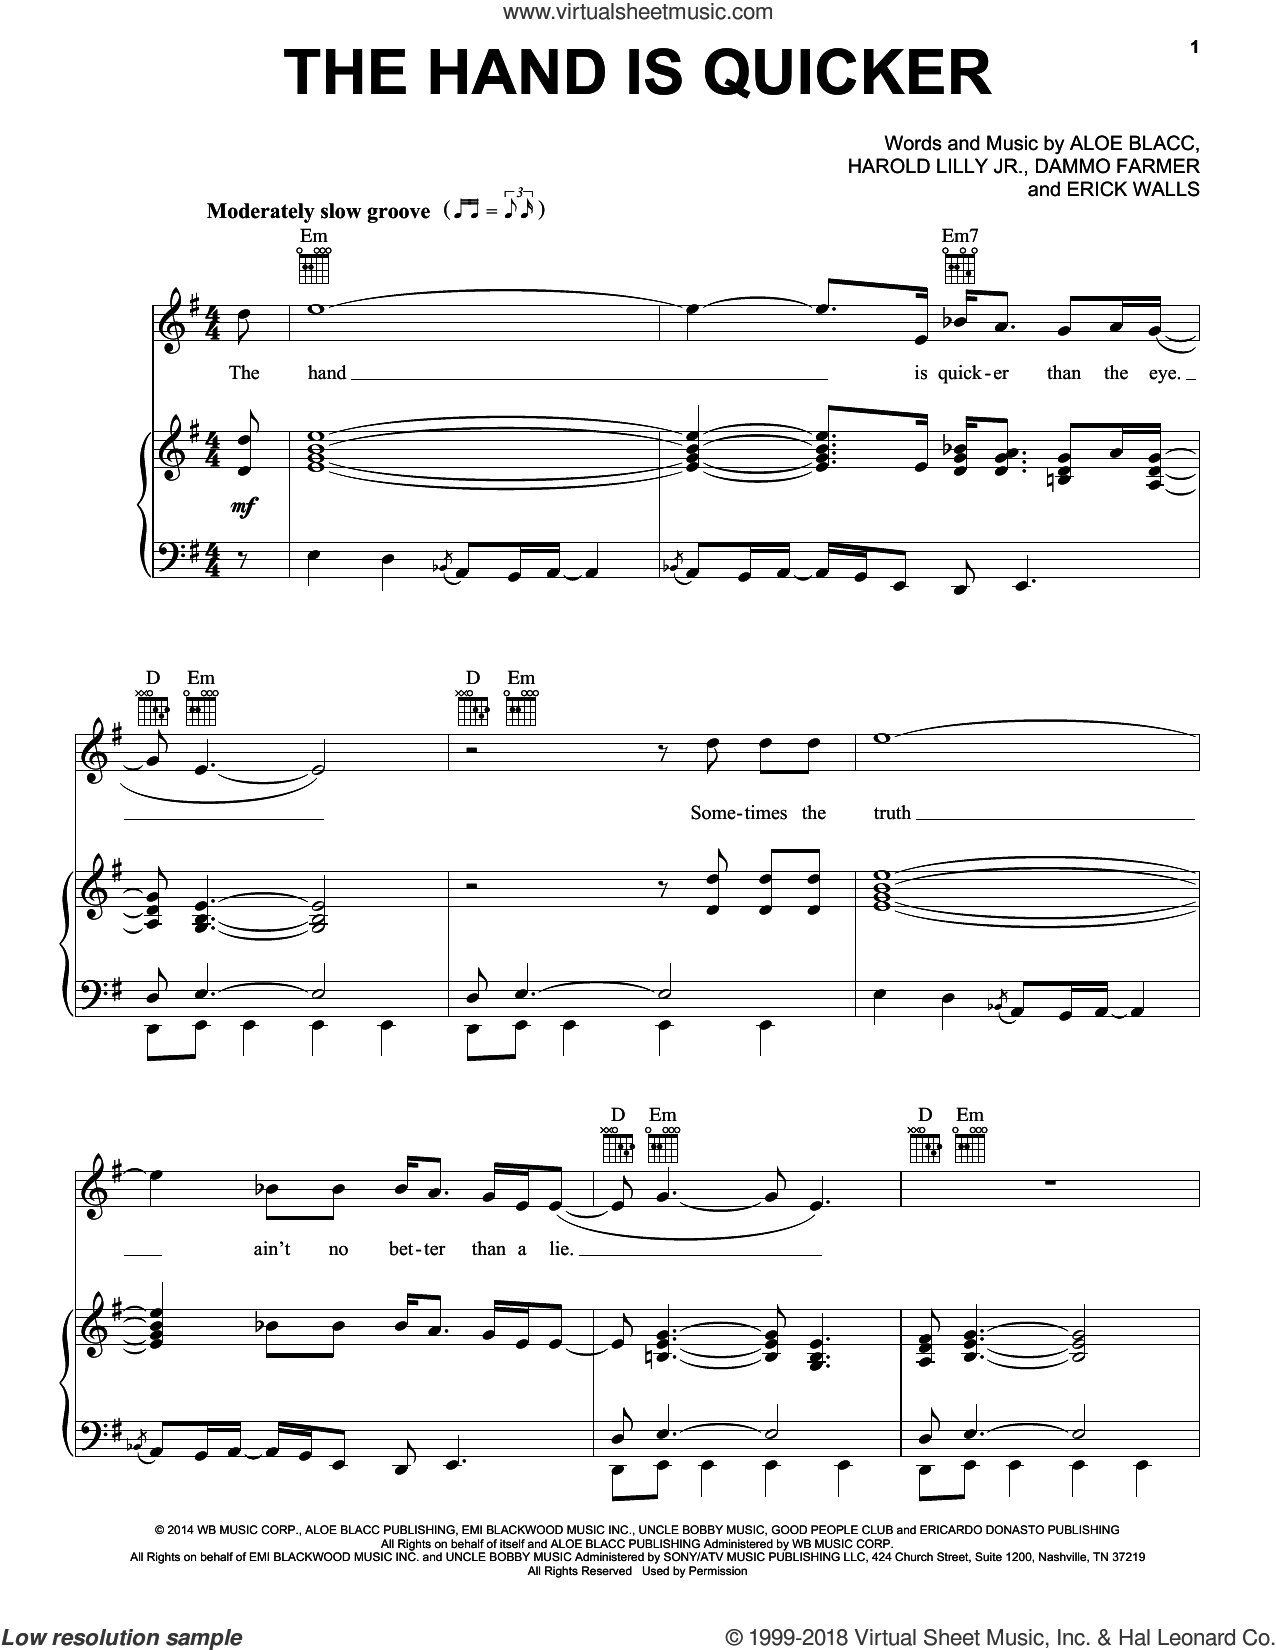 The Hand Is Quicker sheet music for voice, piano or guitar by Harold Lilly, Jr. and Aloe Blacc. Score Image Preview.